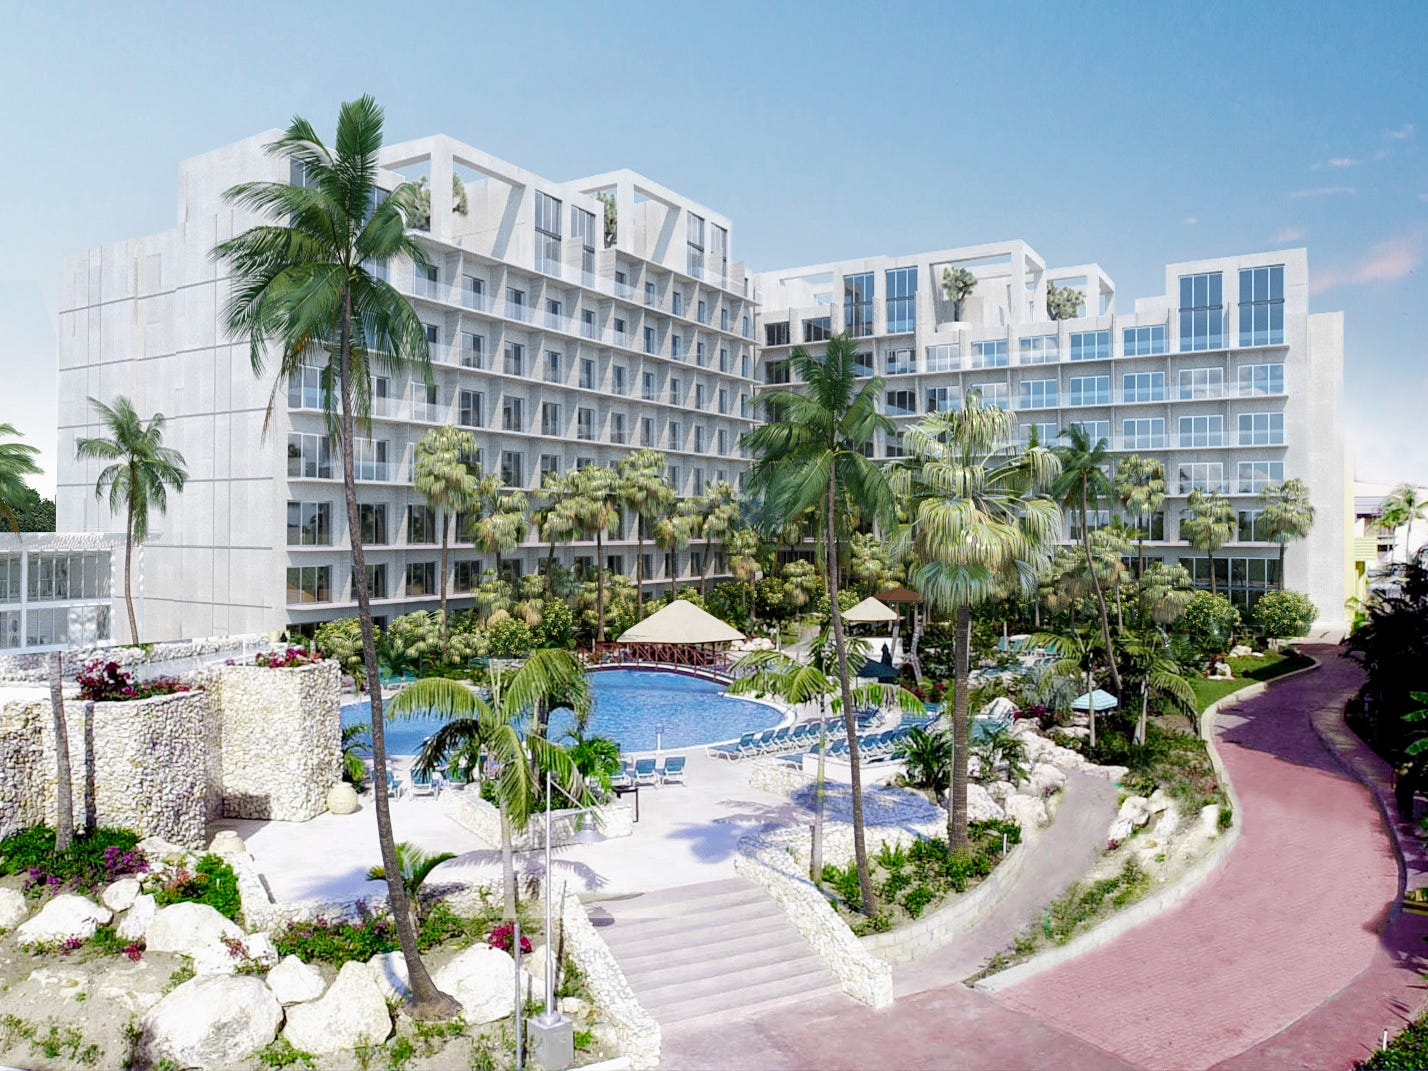 Sonesta Maho Beach Resort, Casino & Spa opens in February as the largest  all-inclusive on St. Maarten.